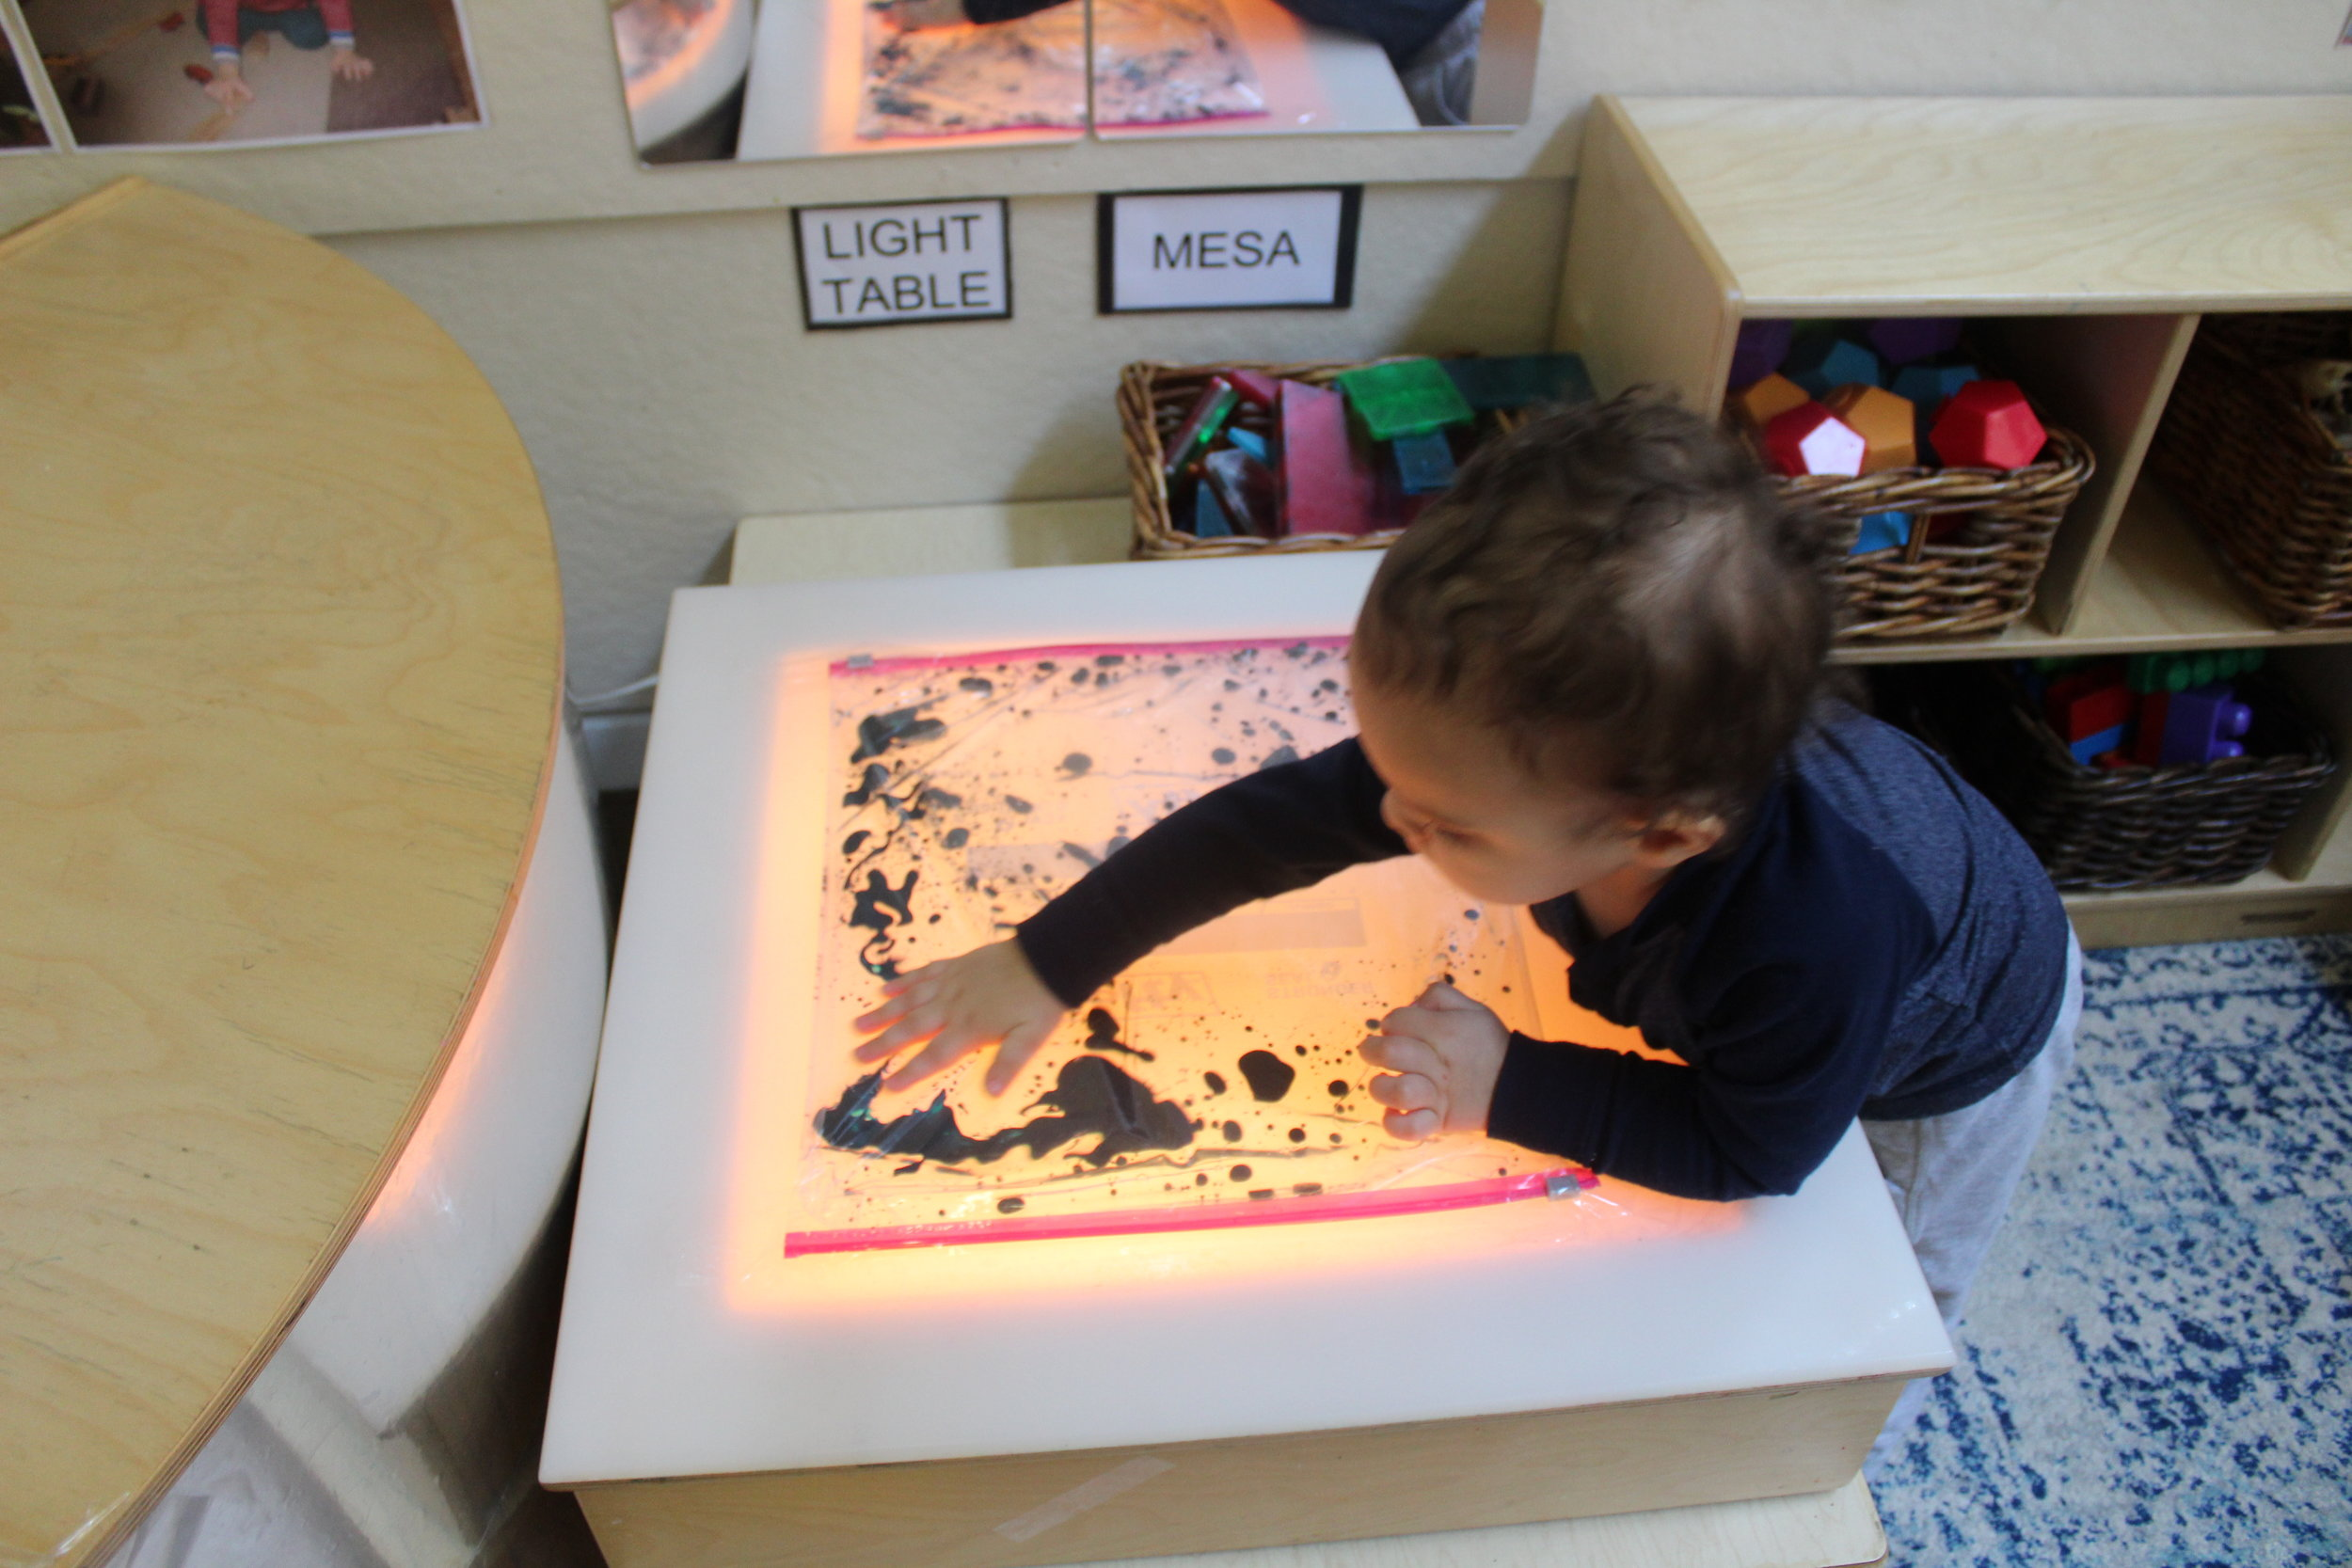 Exploring Sensory Bag: The bag contained baby oil, water,and blue watercolor.